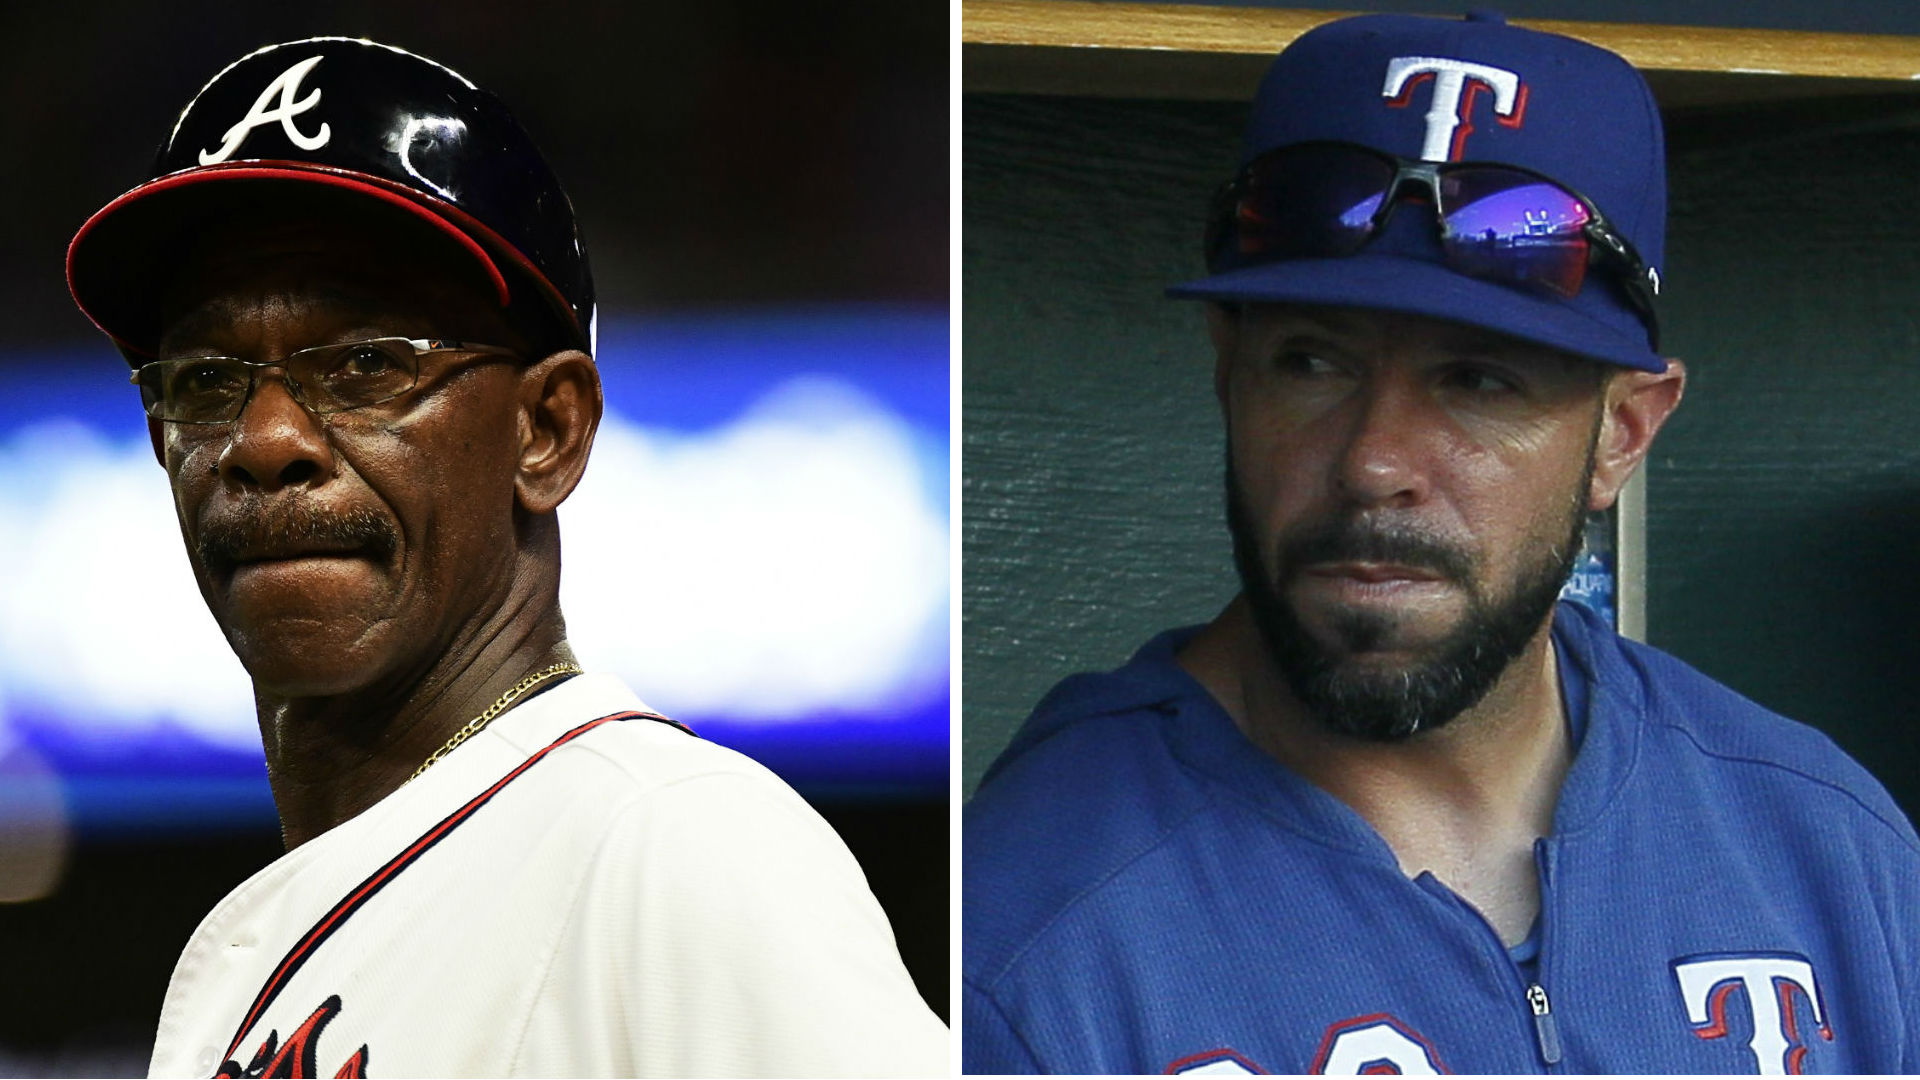 Padres manager search focused on Ron Washington and Jayce Tingler, report says